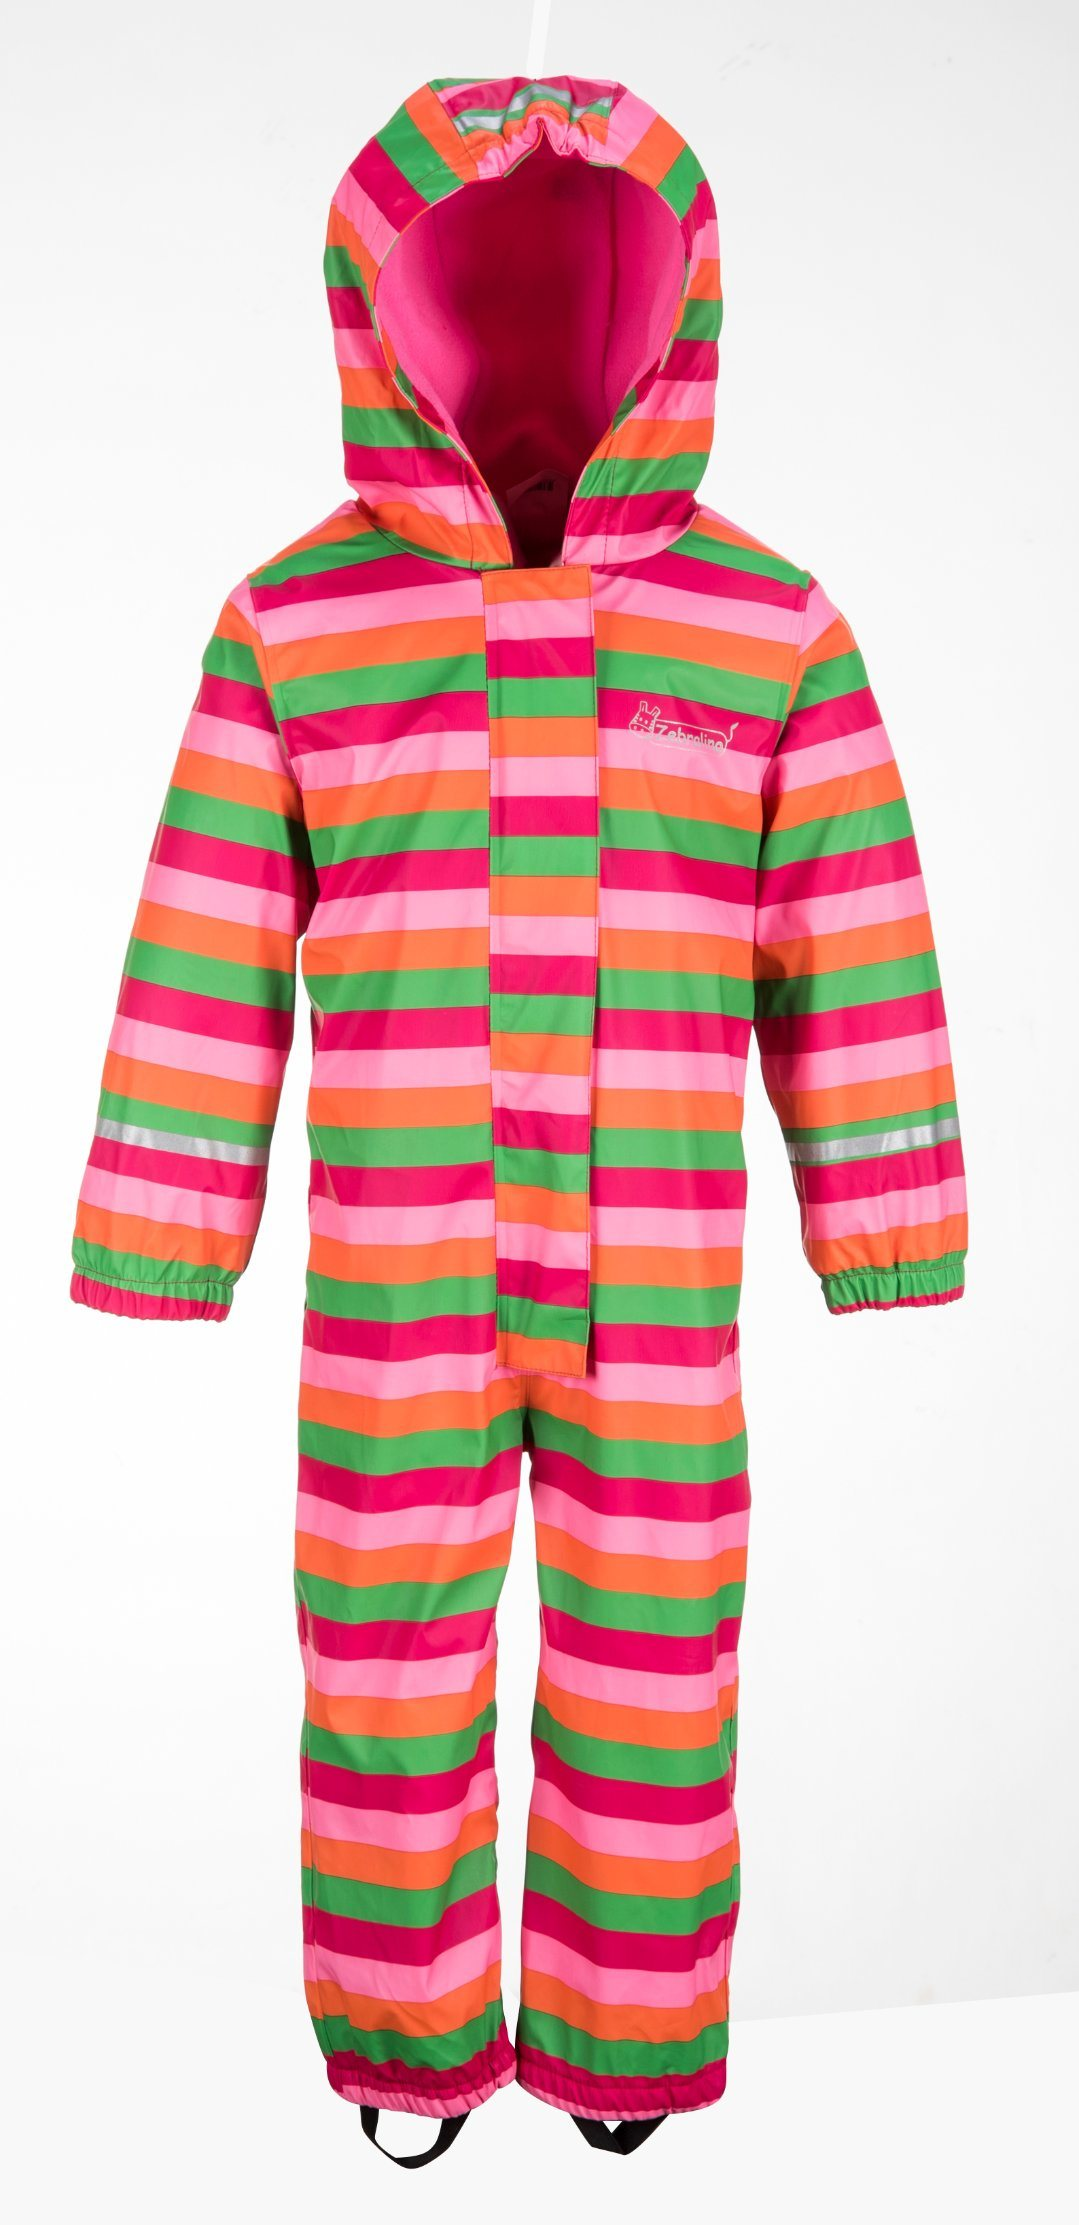 arriving shop for authentic how to get [Hot Item] 2018 Low Price PU Waterproof Kid Rainbow Overall Rainwear